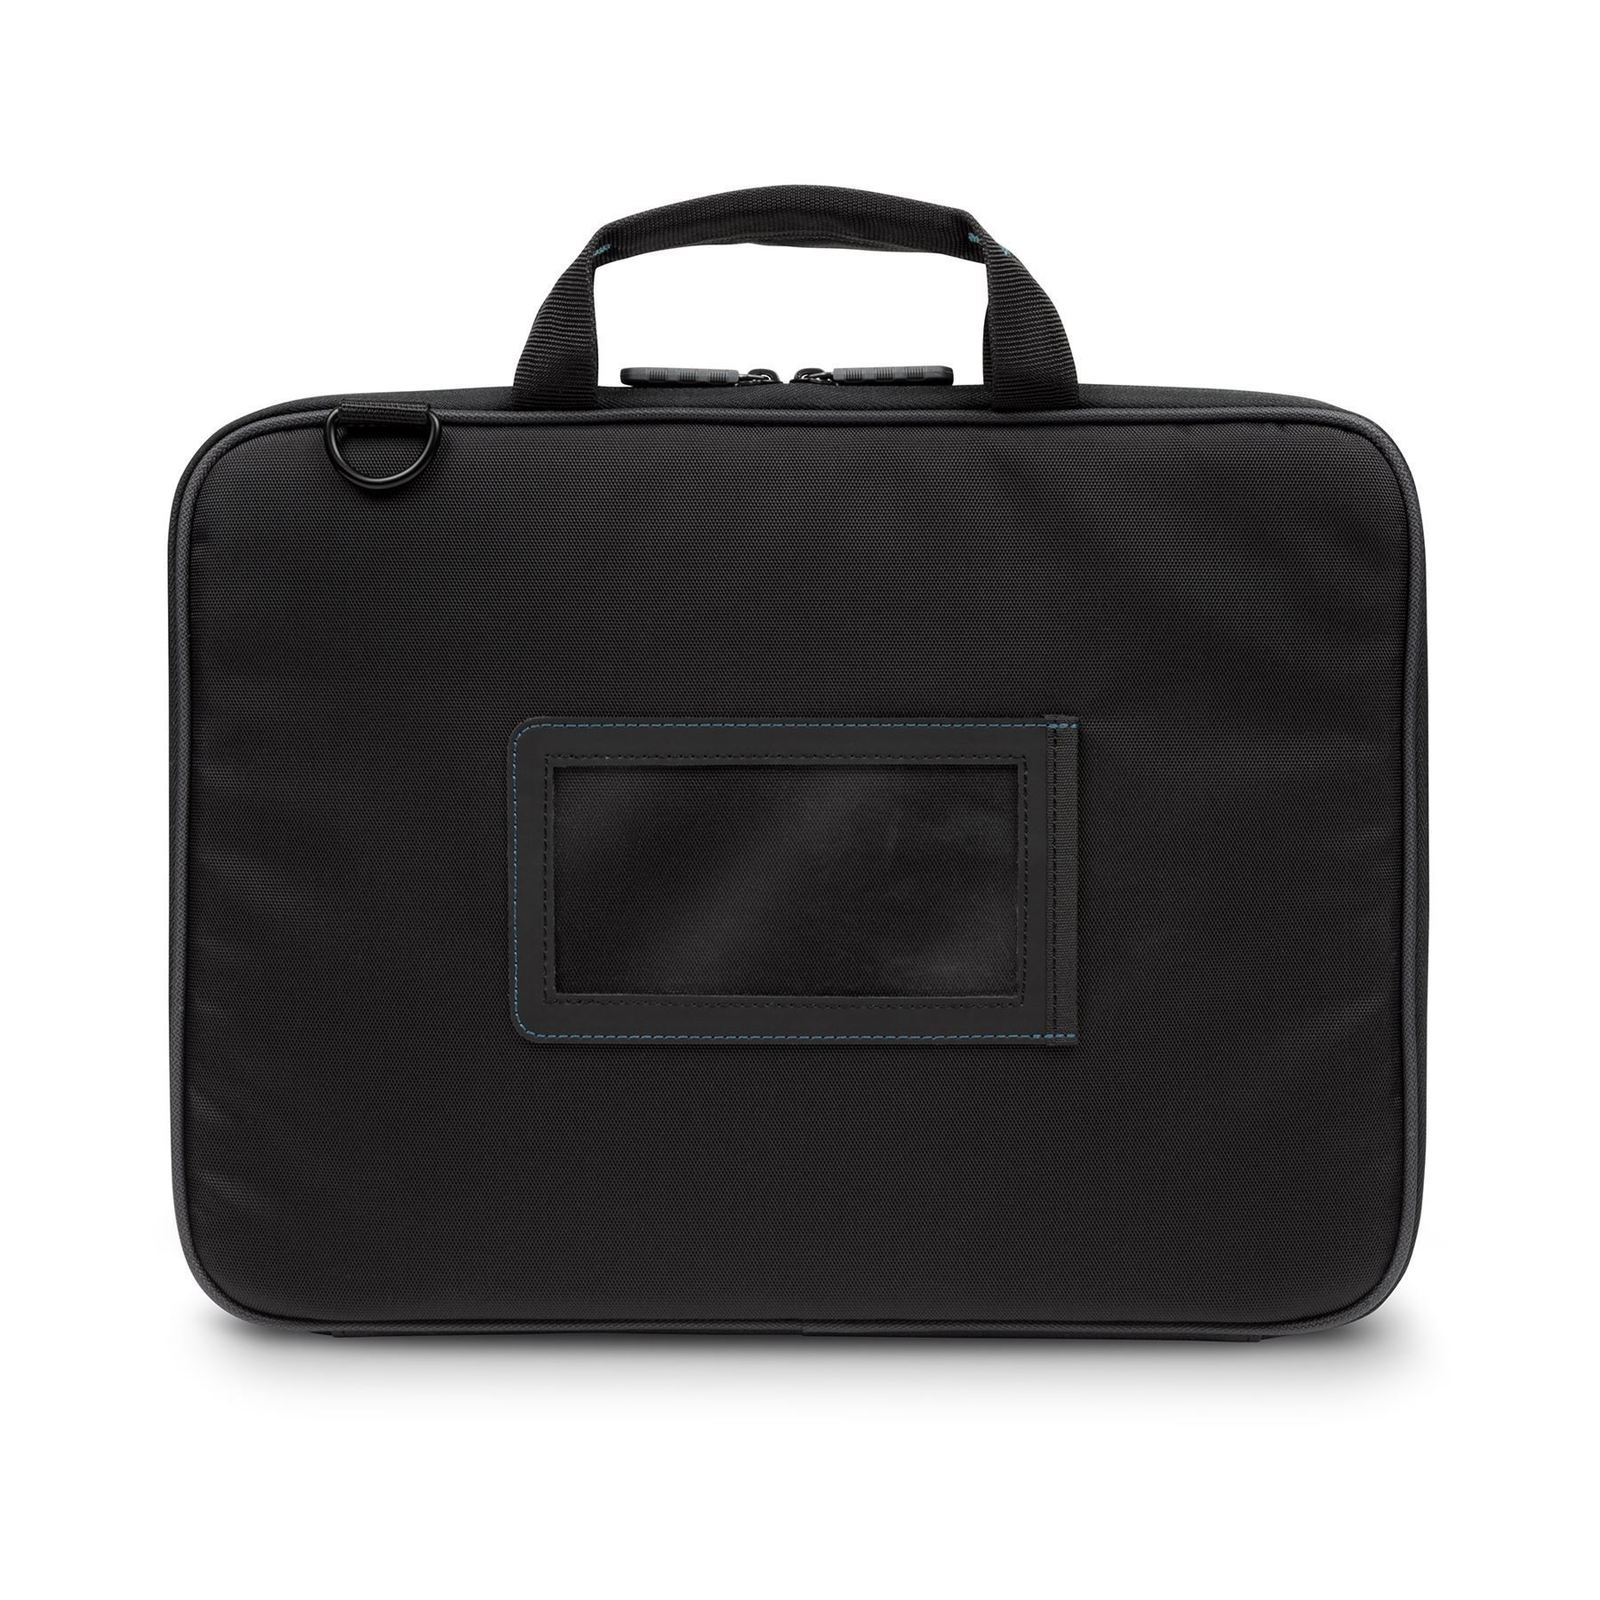 """Targus: Education Dome Protection 11.6"""" Work-In Clamshell Laptop Bag (Black/Grey) image"""